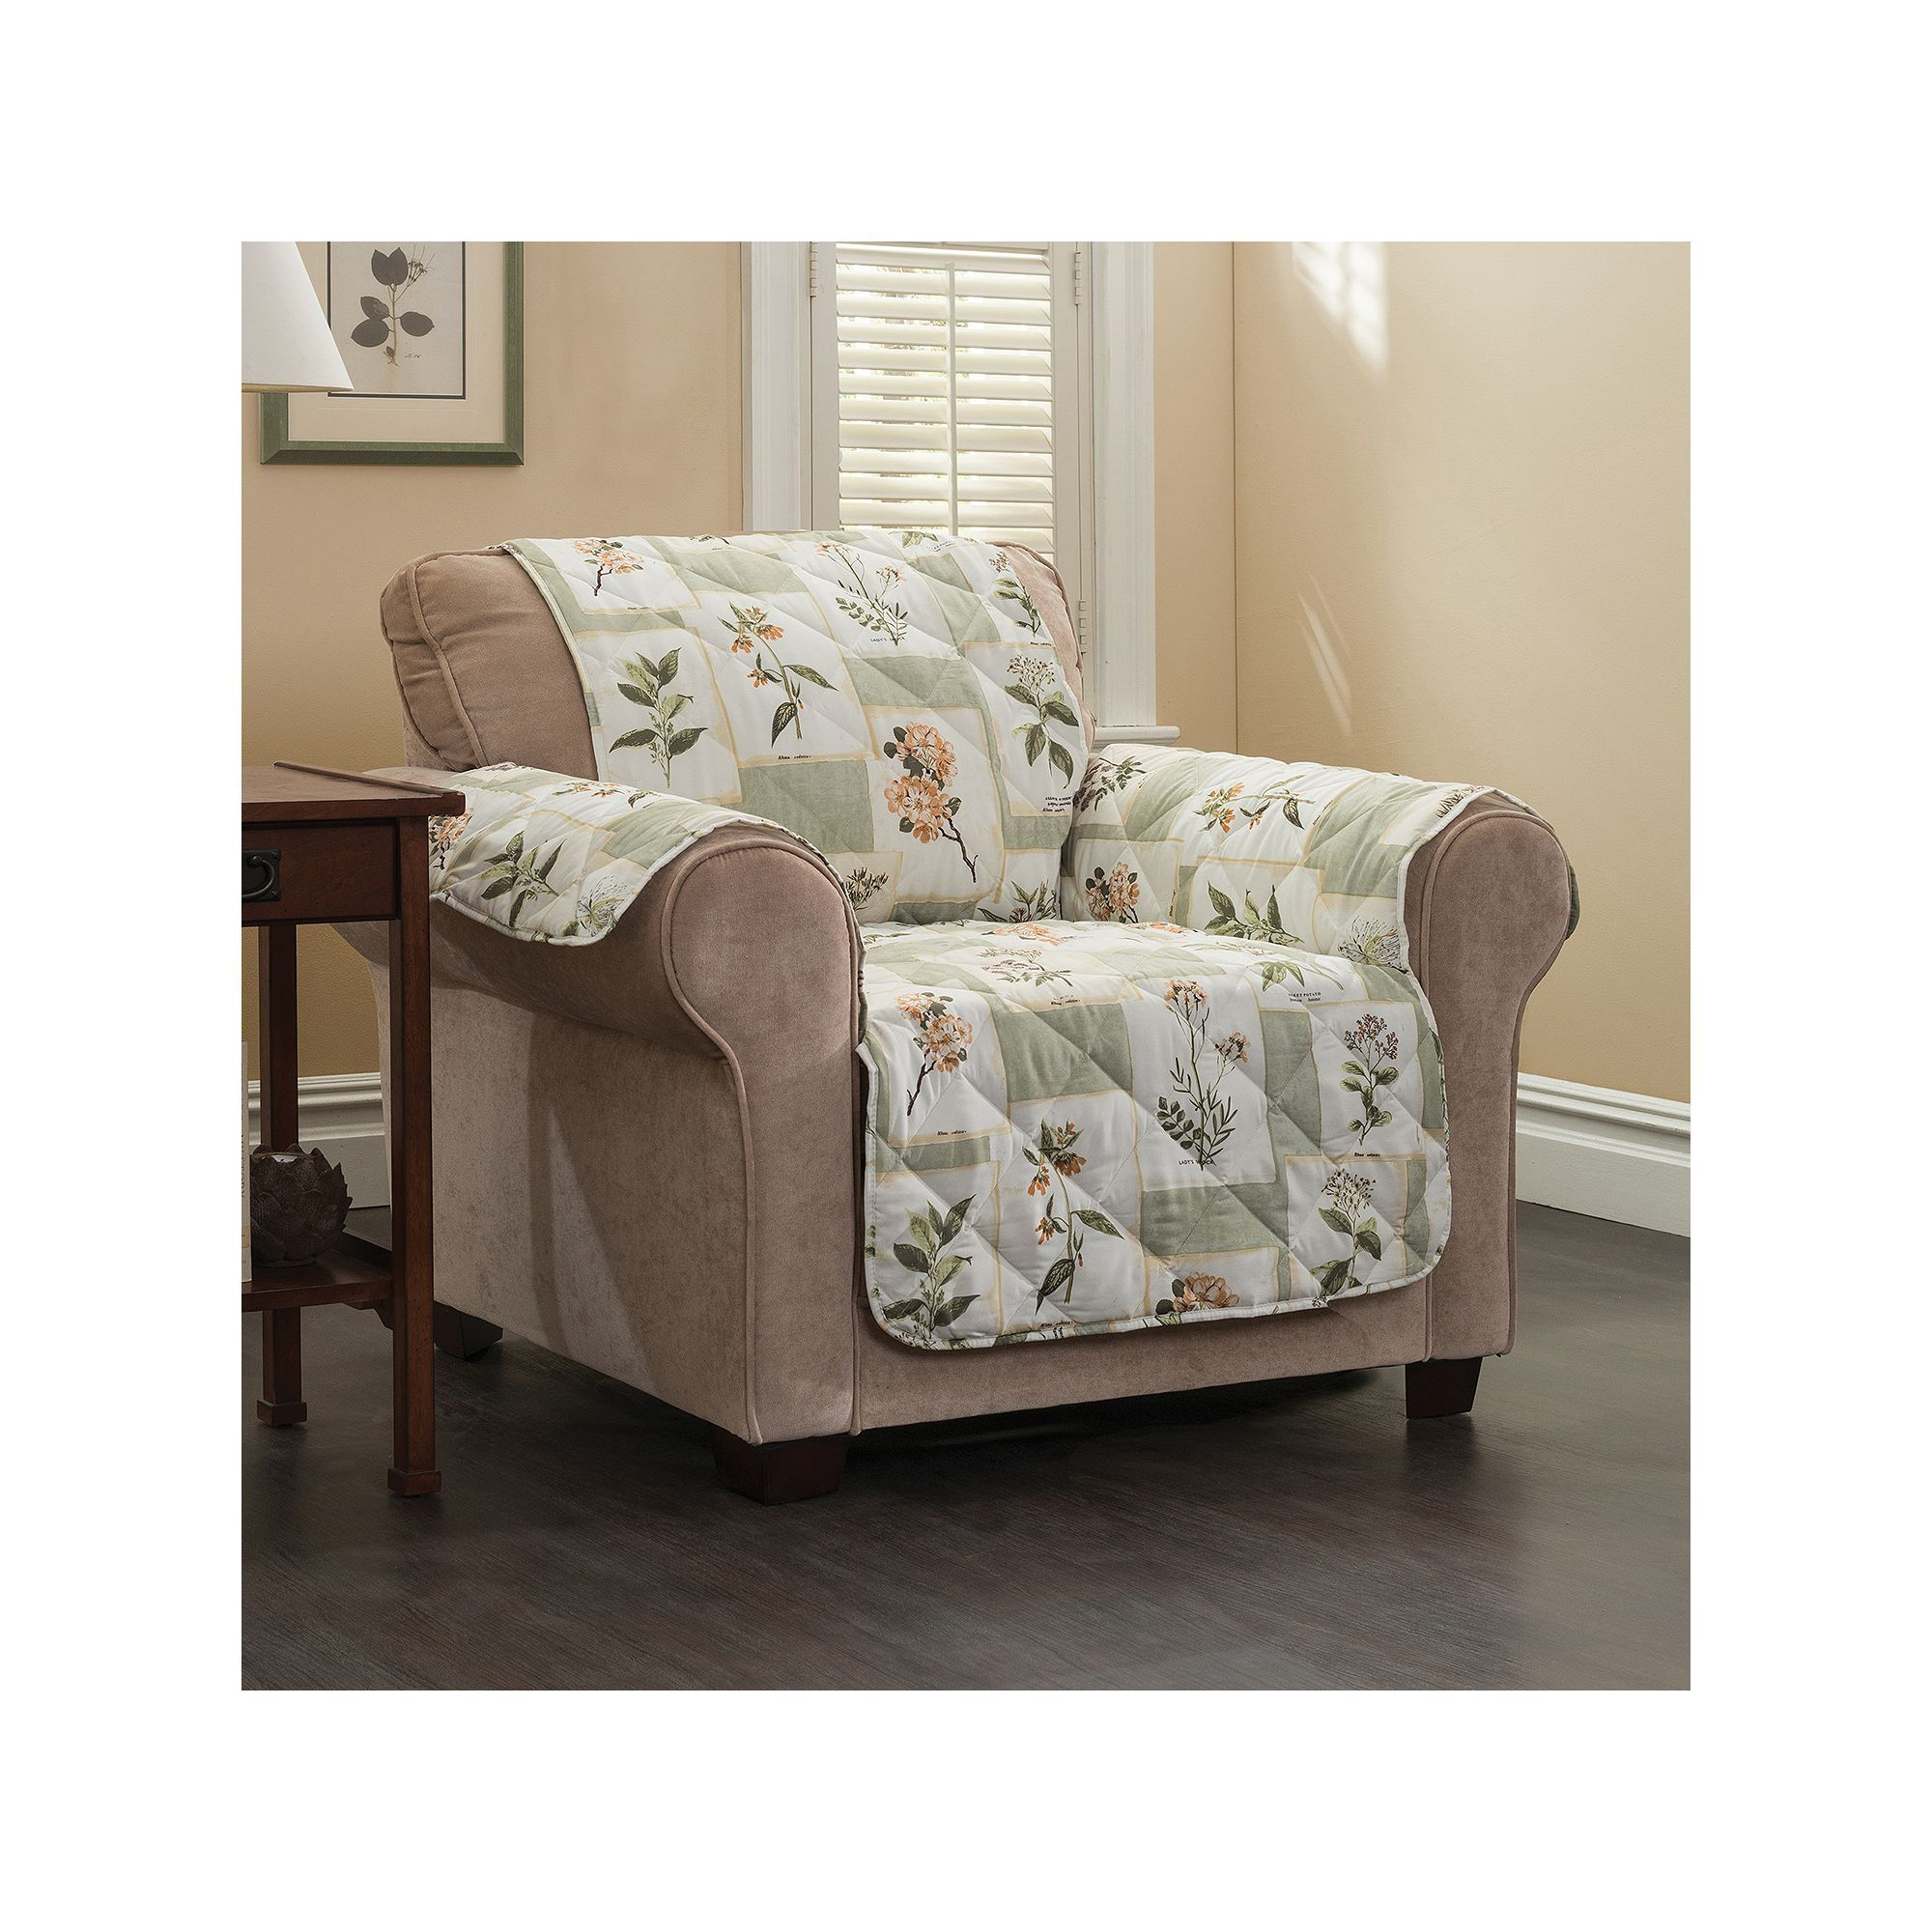 Innovative Textile Solutions Botanical Furniture Protector, Green